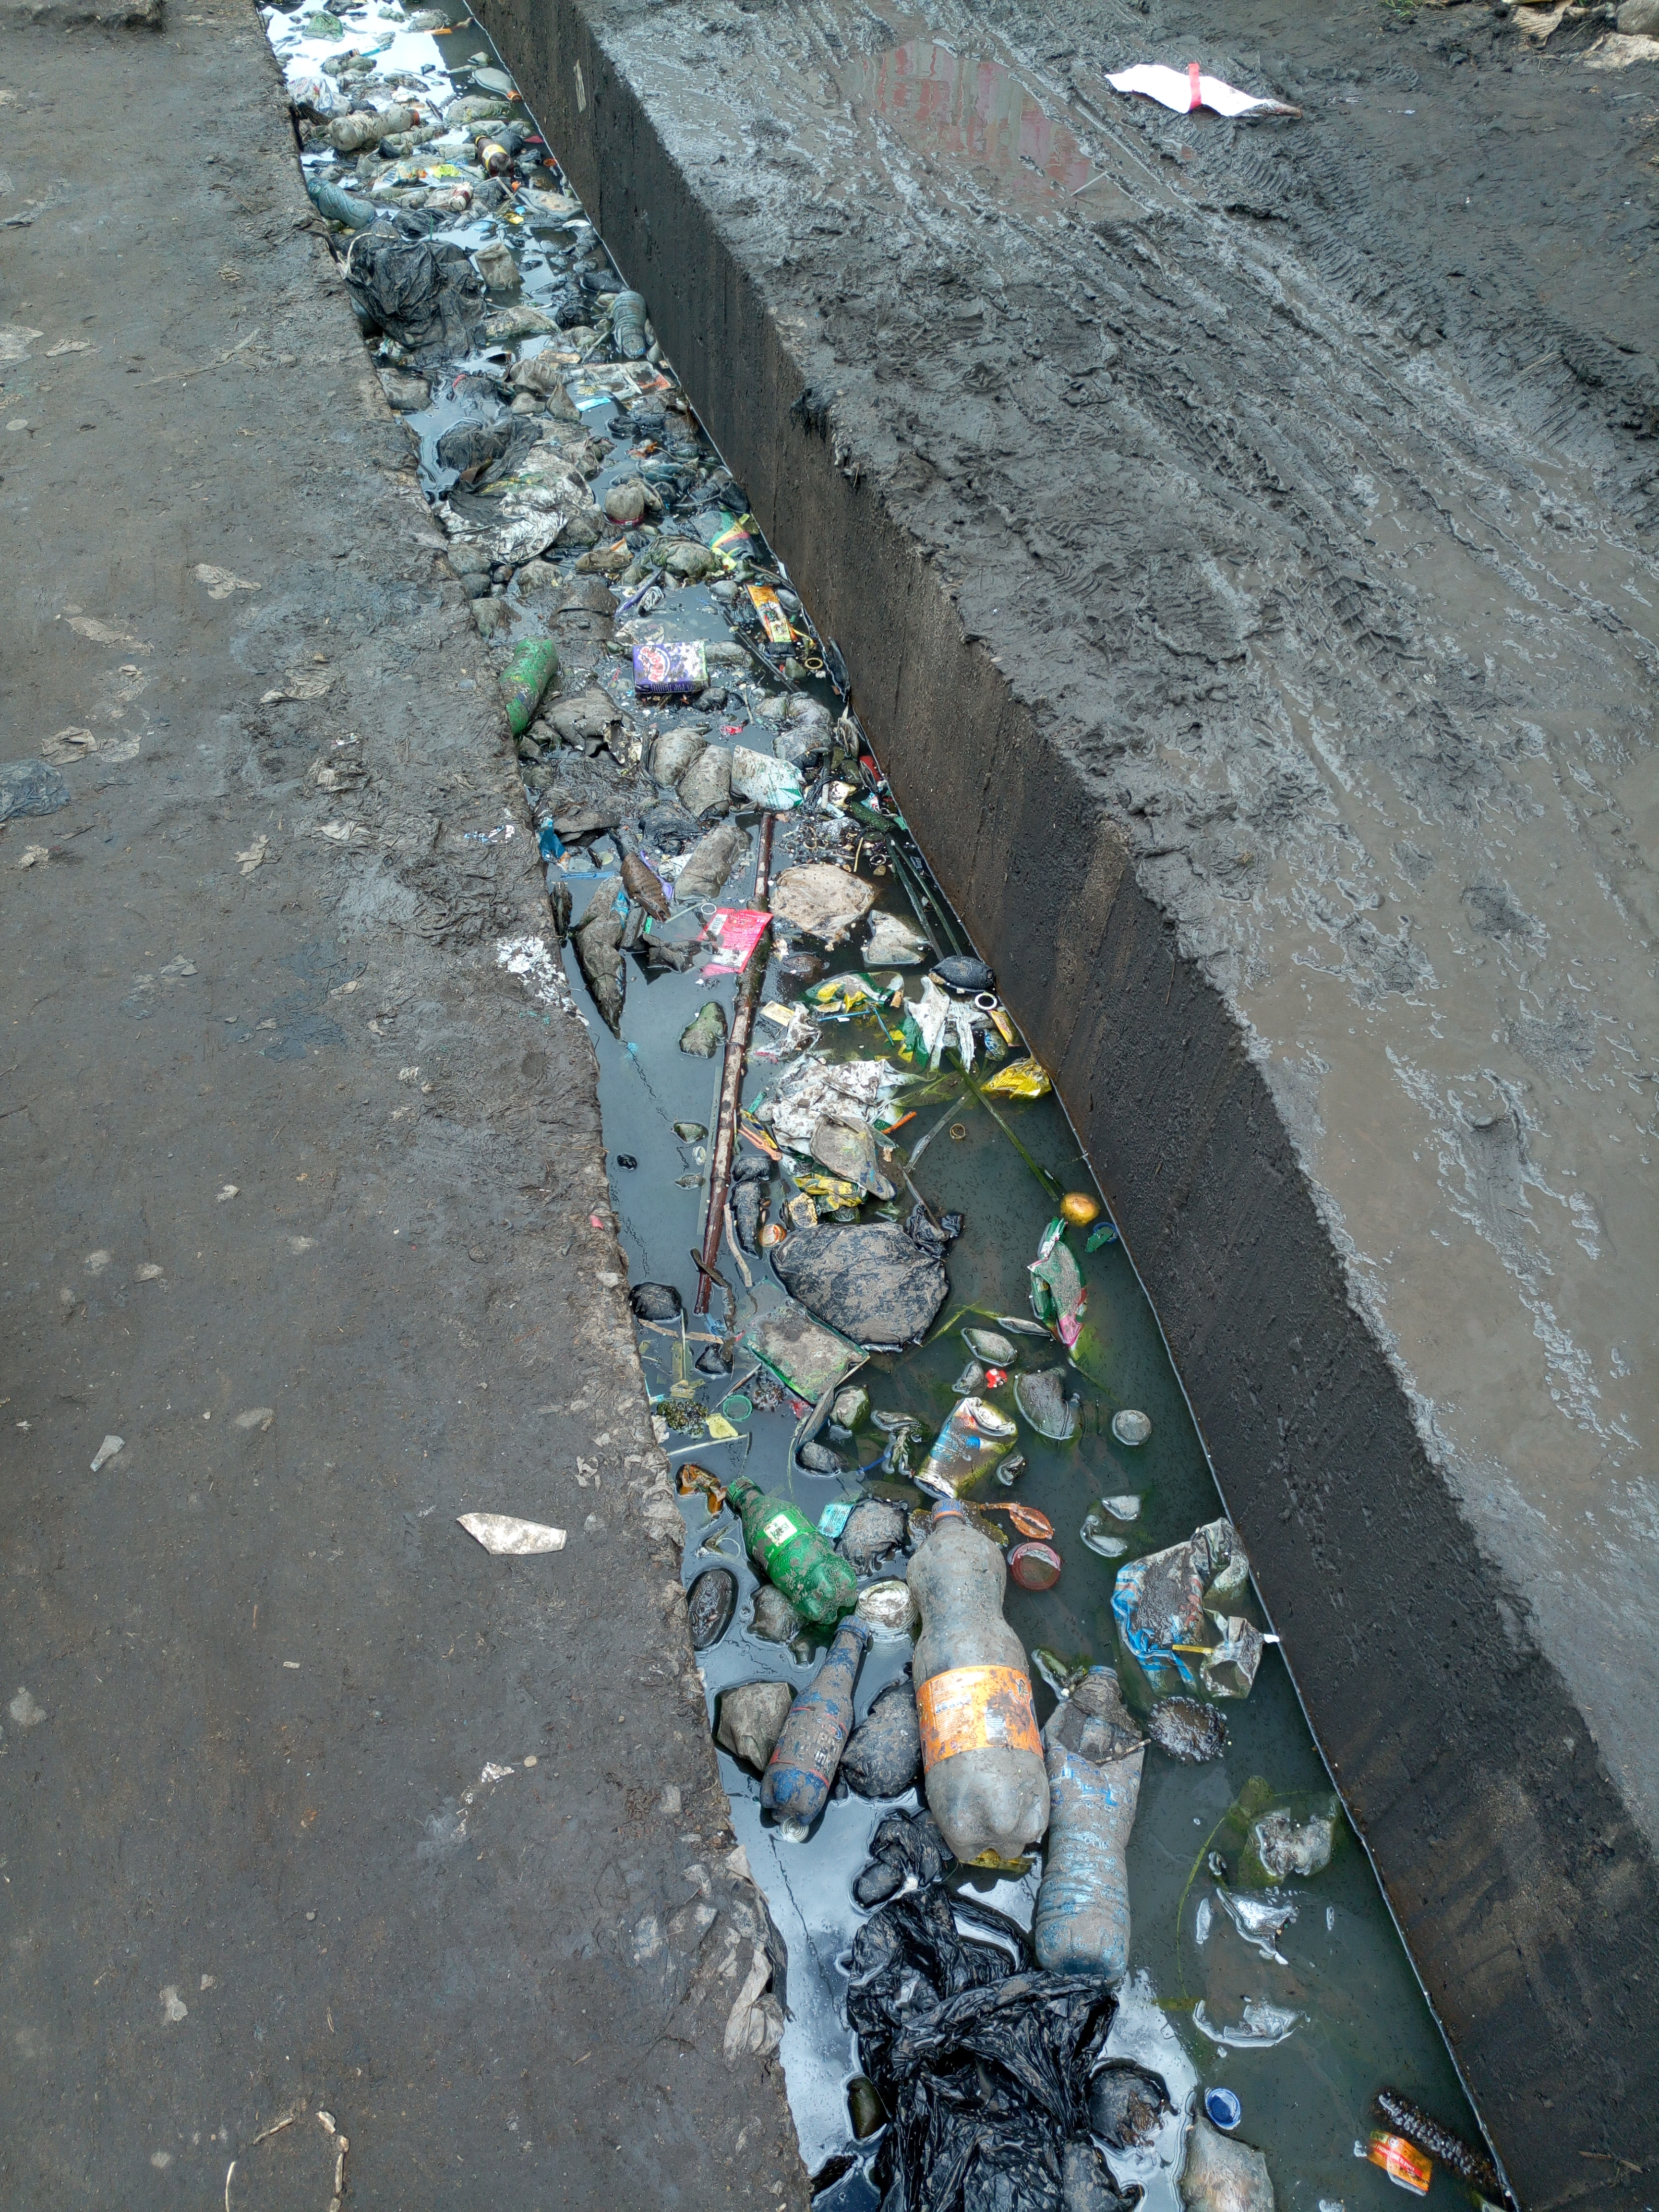 Firm calls for sustainable infrastructure to waste management in Kenya, Africa